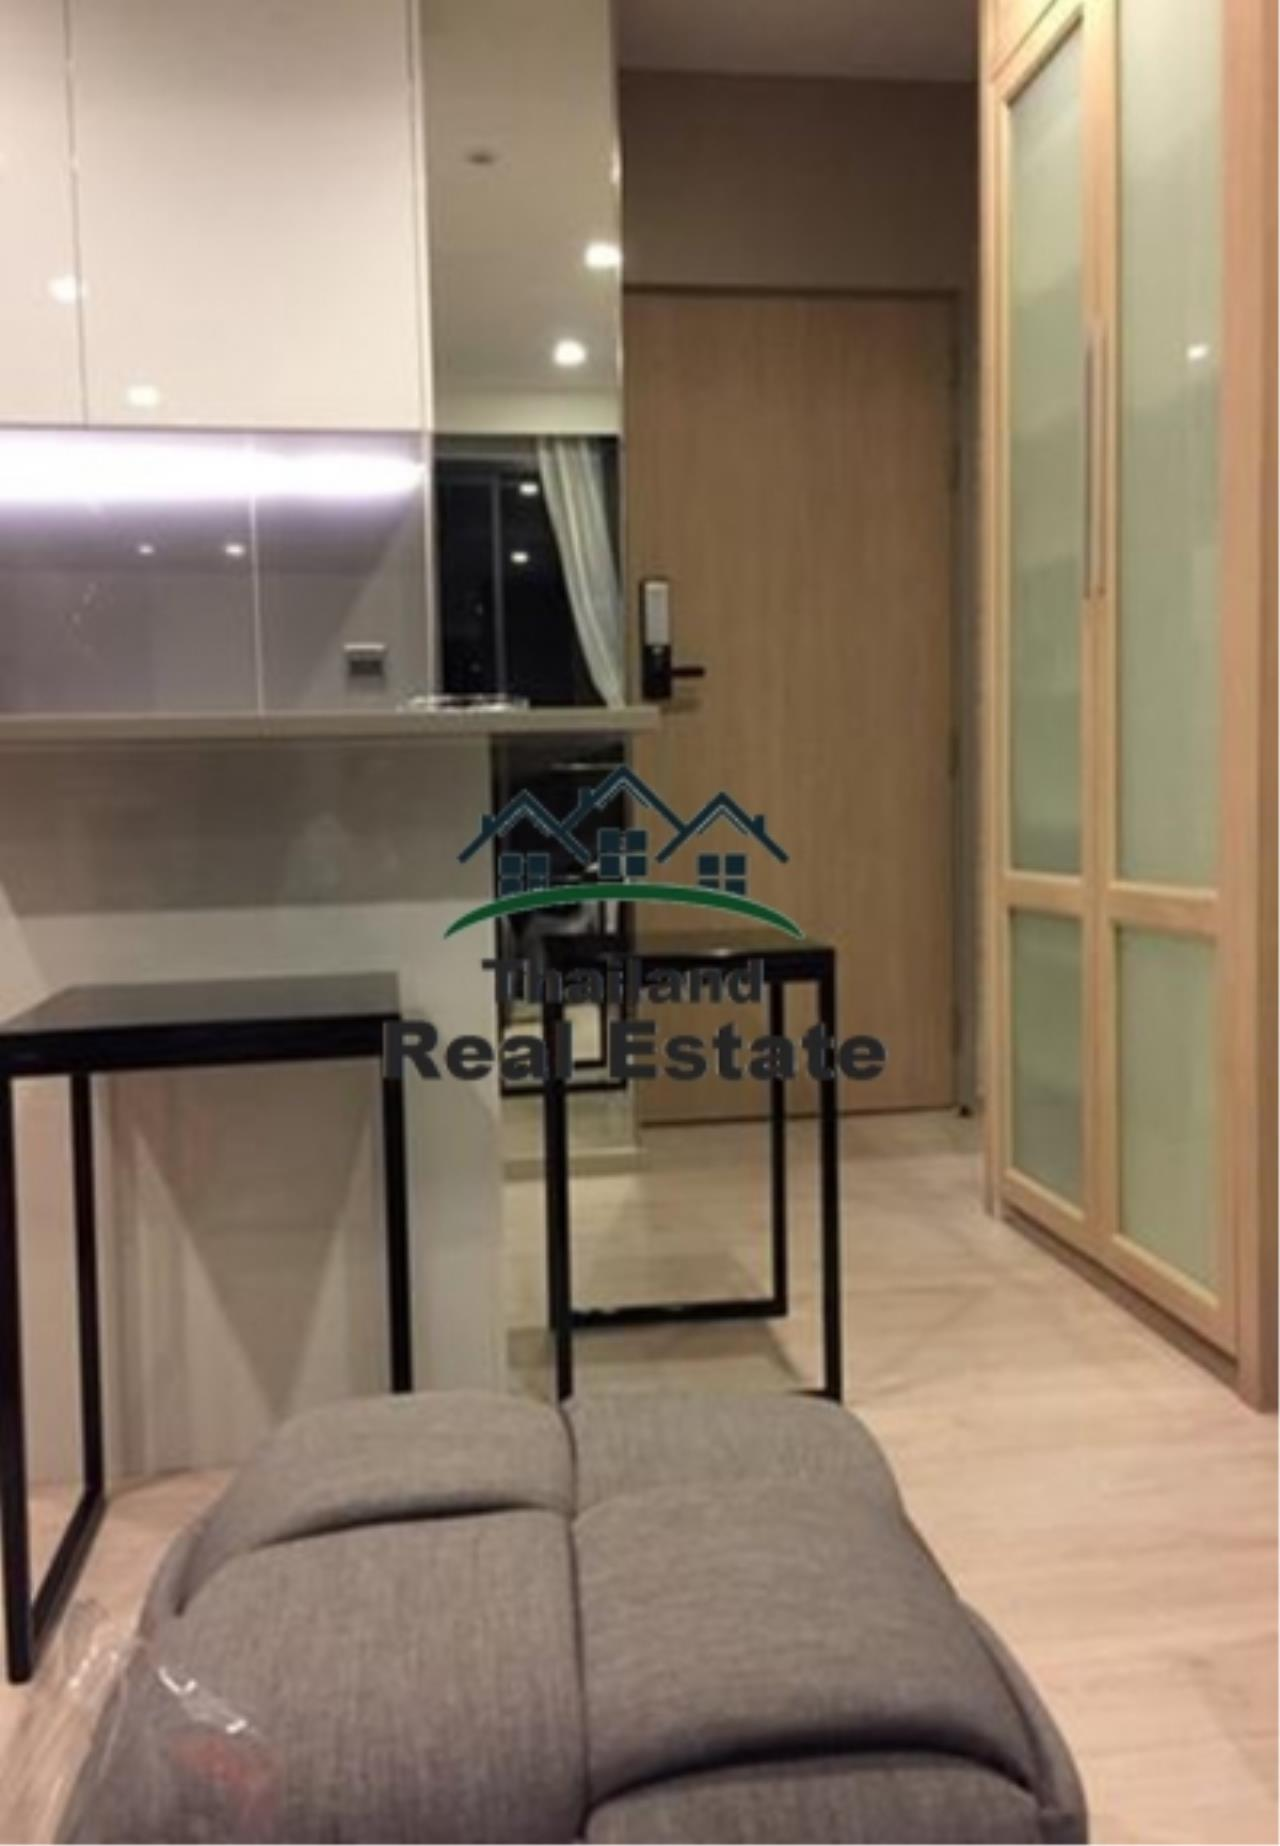 Thailand Real Estate Agency's 1 Bedroom Condo at M Thonglor near BTS Ekkamai(12708) 2